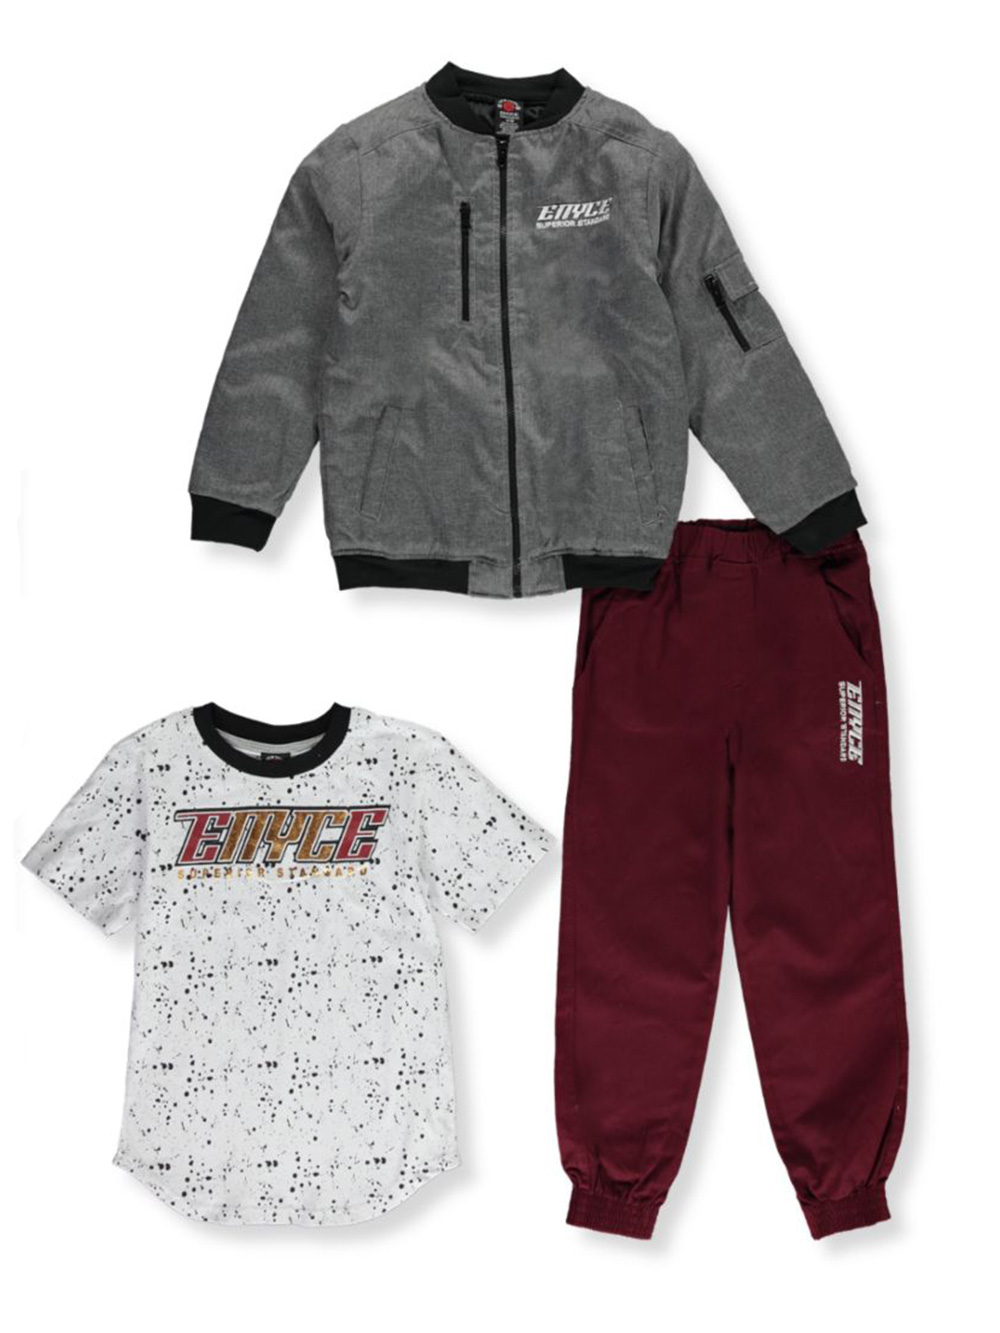 Size 5-6 Sets for Boys